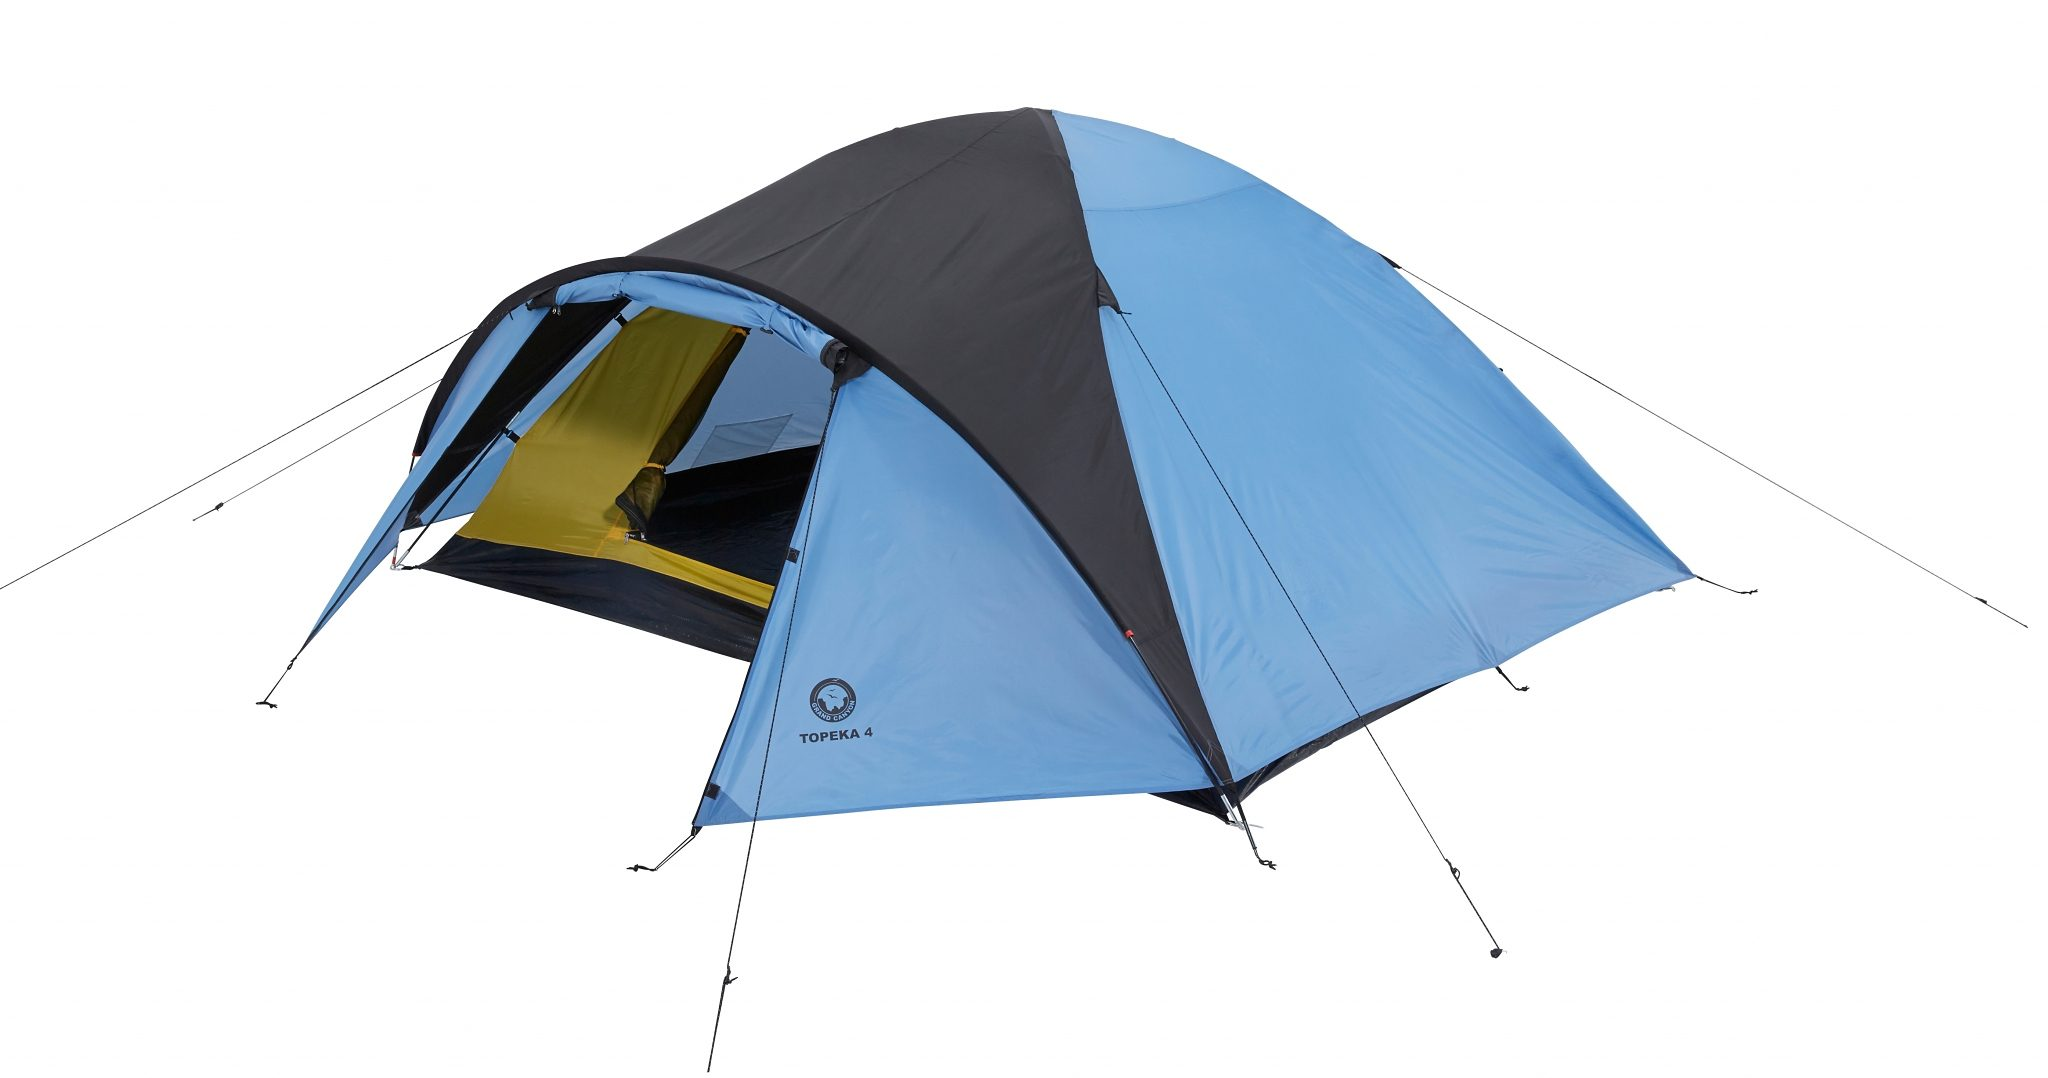 Grand Canyon Zelt »Topeka 4 Tent«